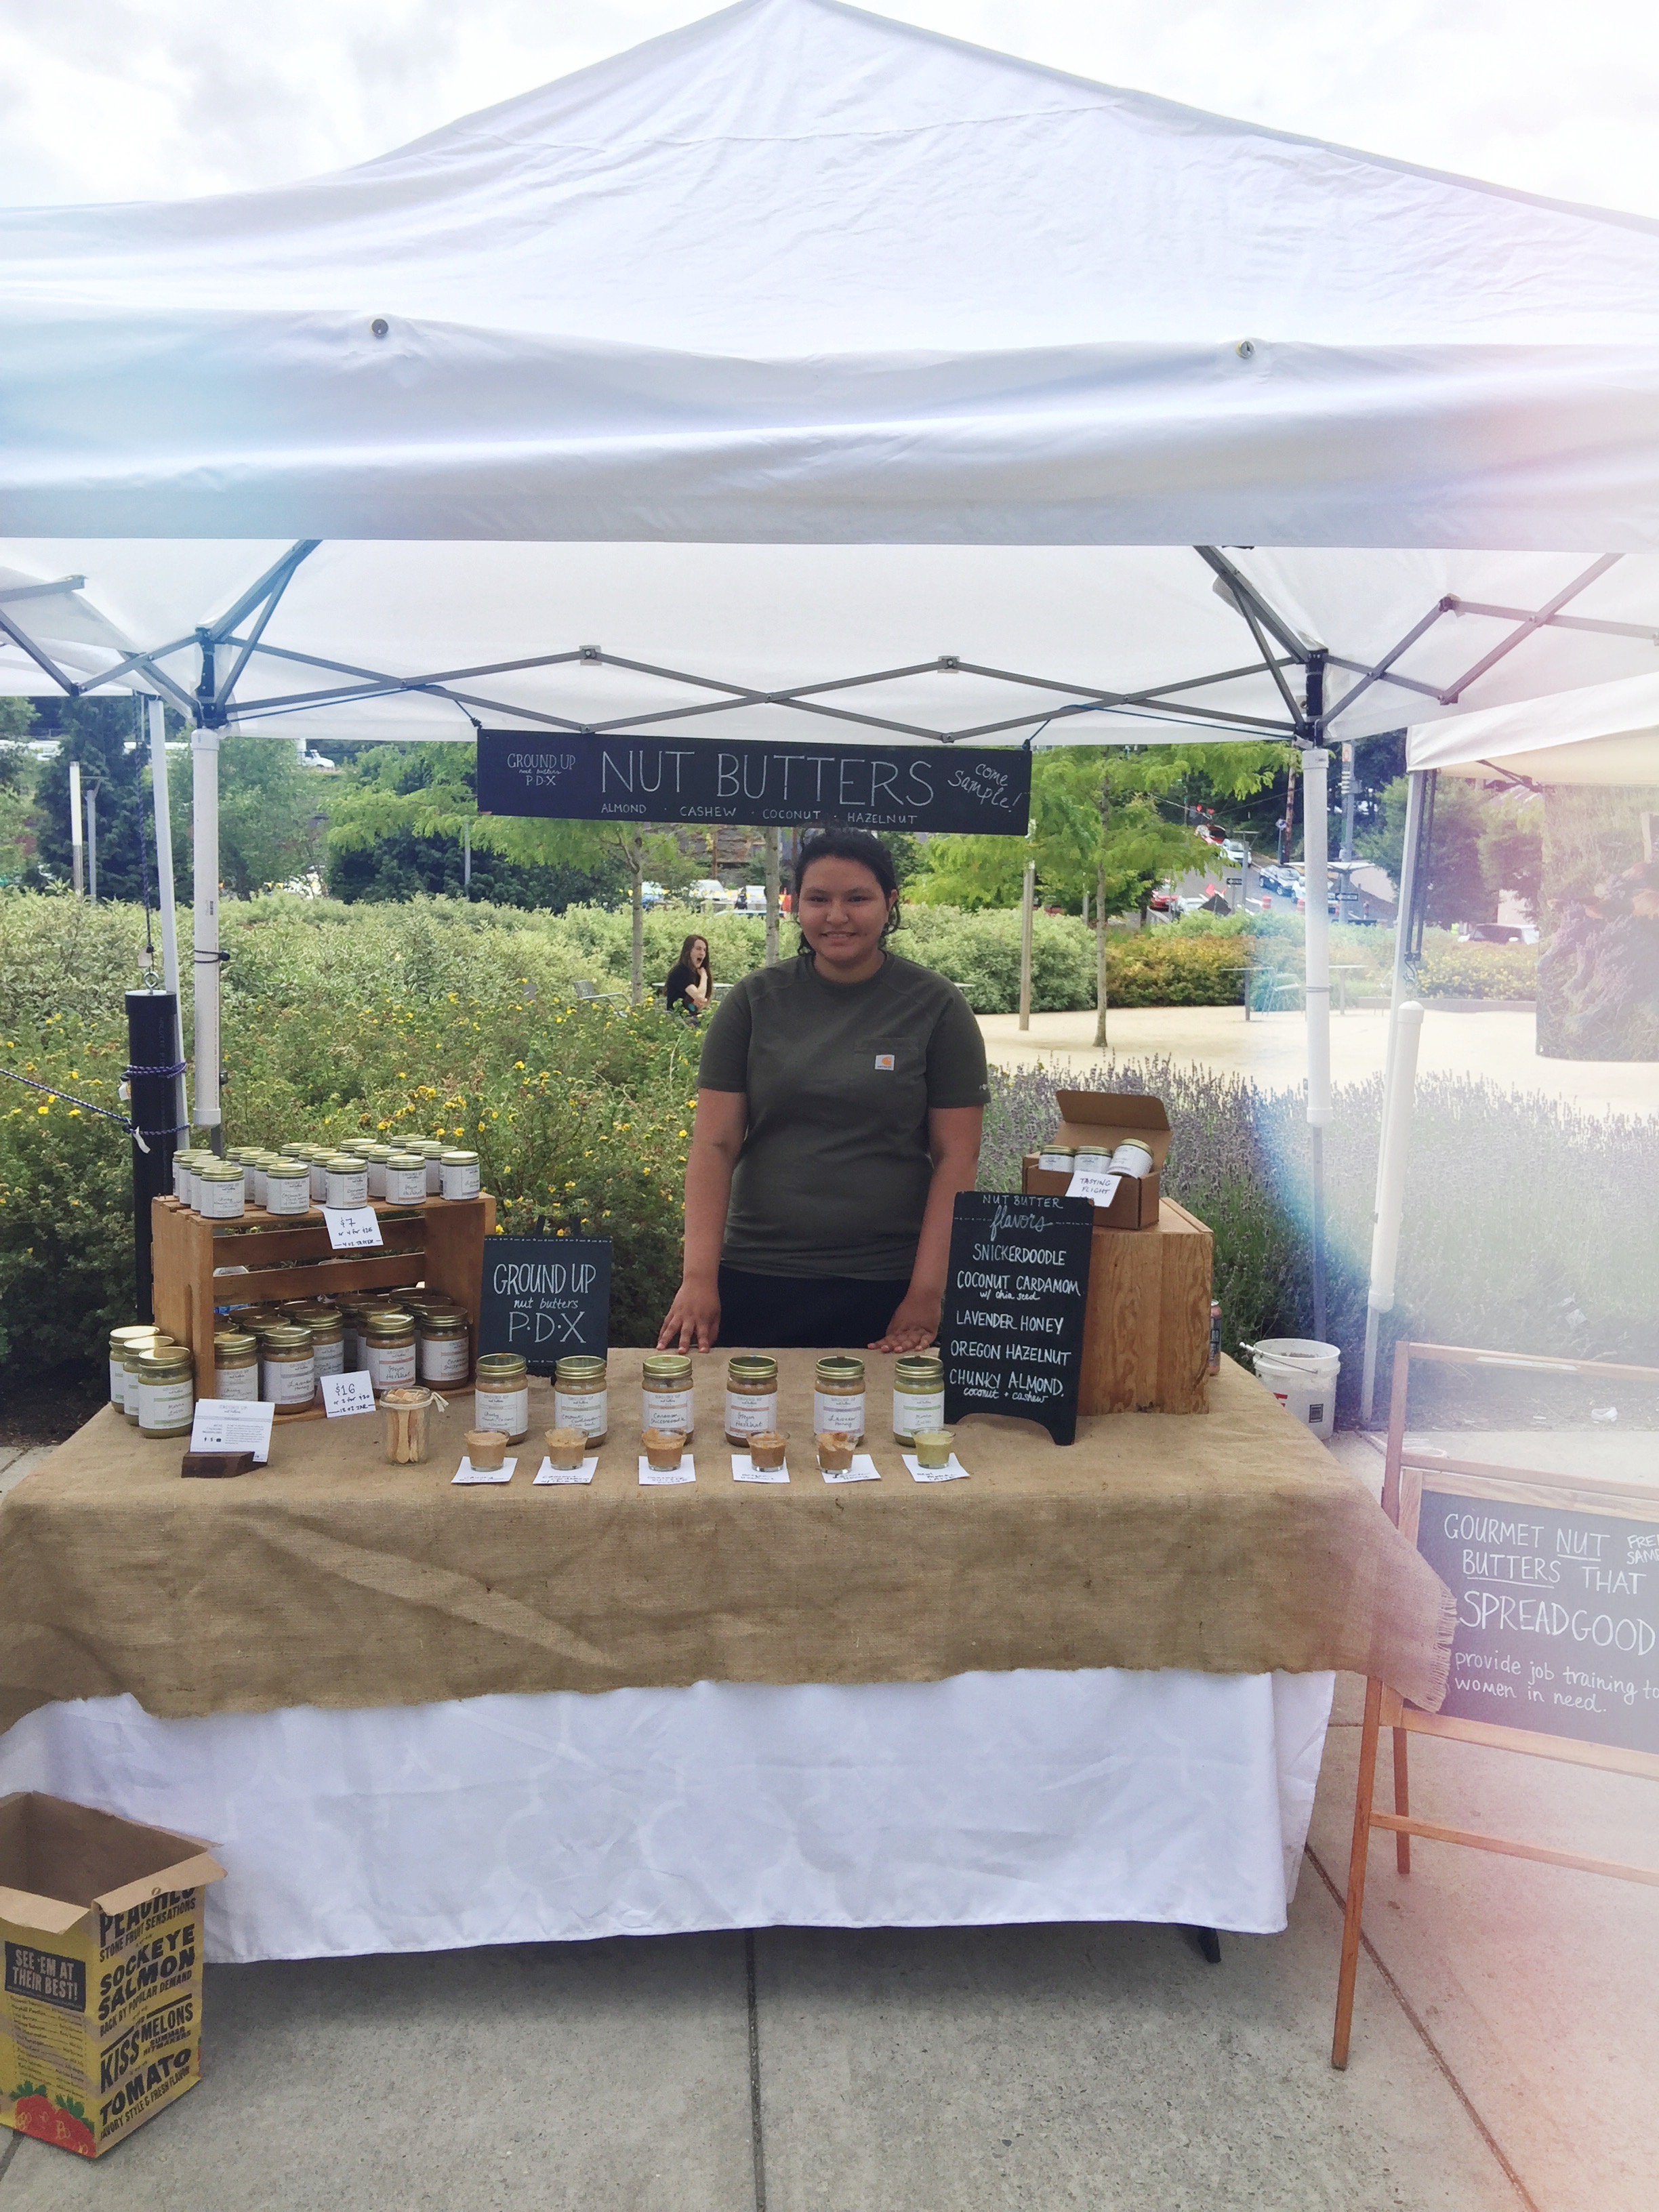 Meet Cynthia! She's working the South Waterfront Farmer's Market in this photo.